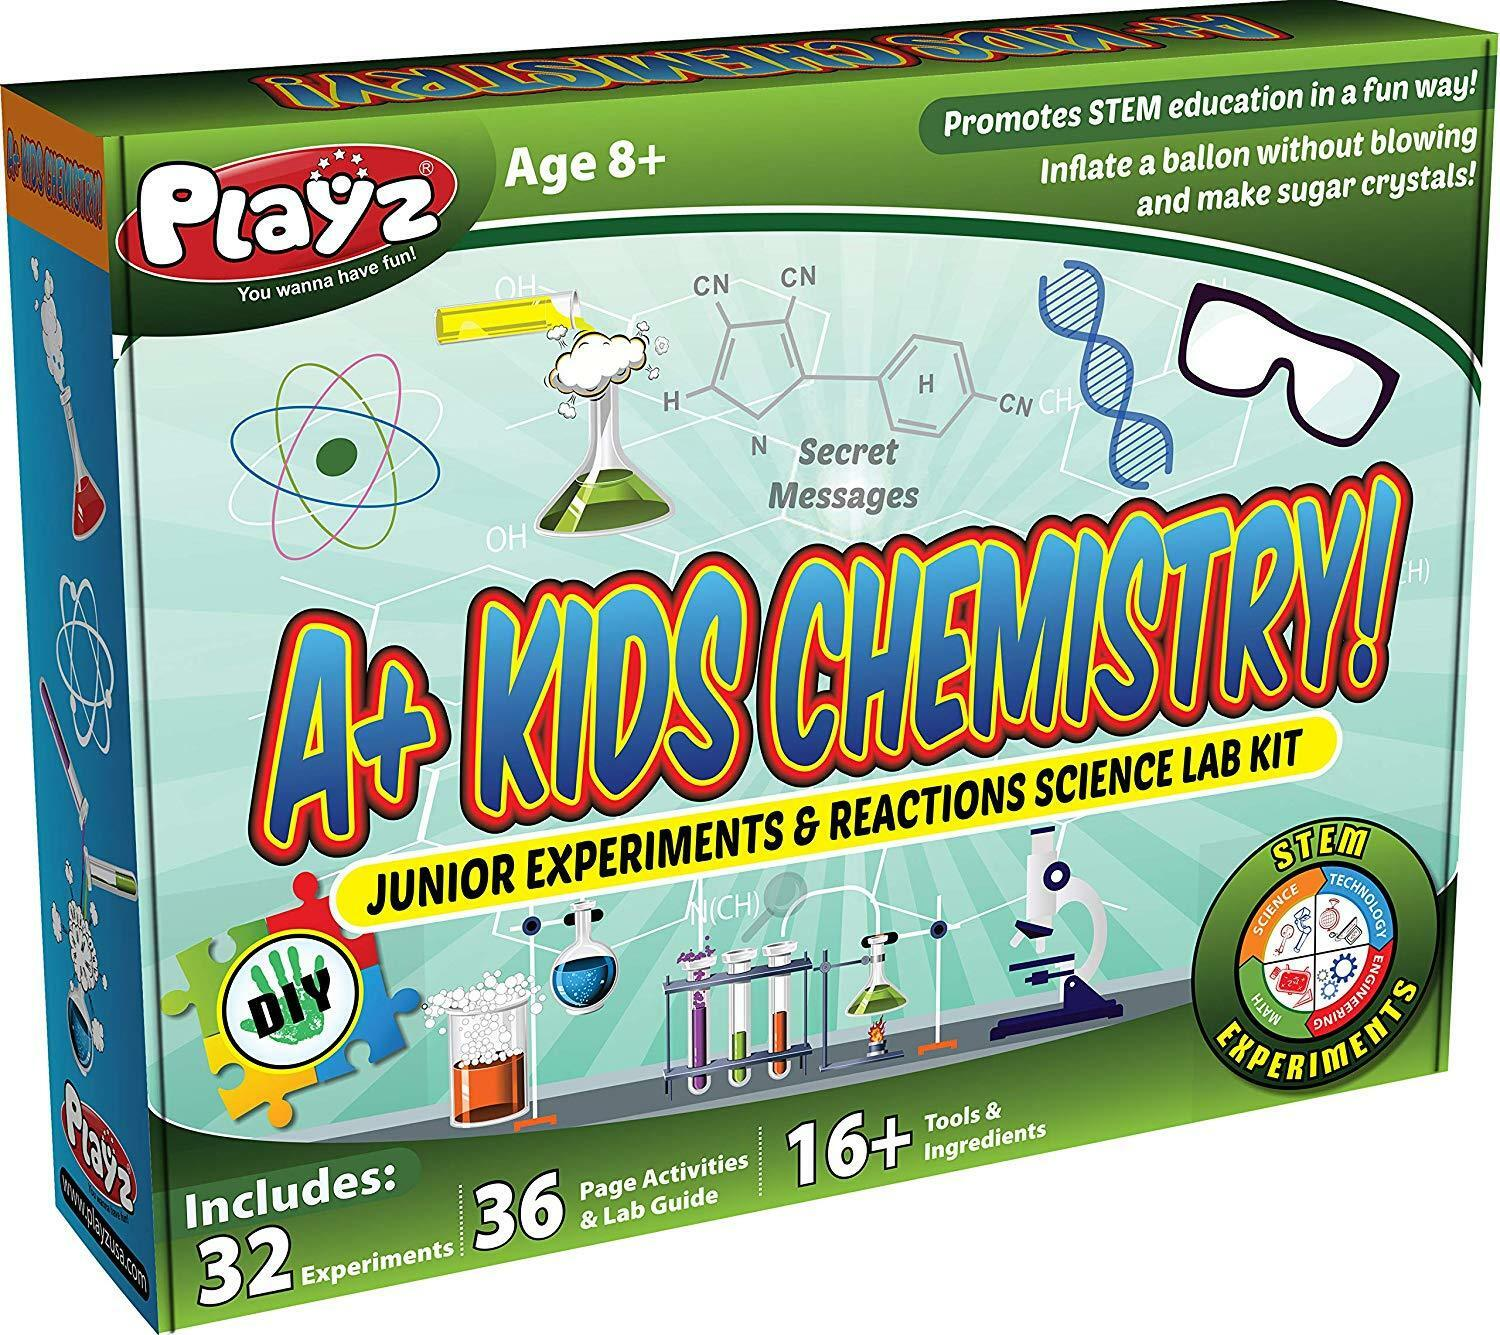 Kids Chemistry Junior Experiments & Reactions Science Lab Kit - Ages 8+ Boy Girl